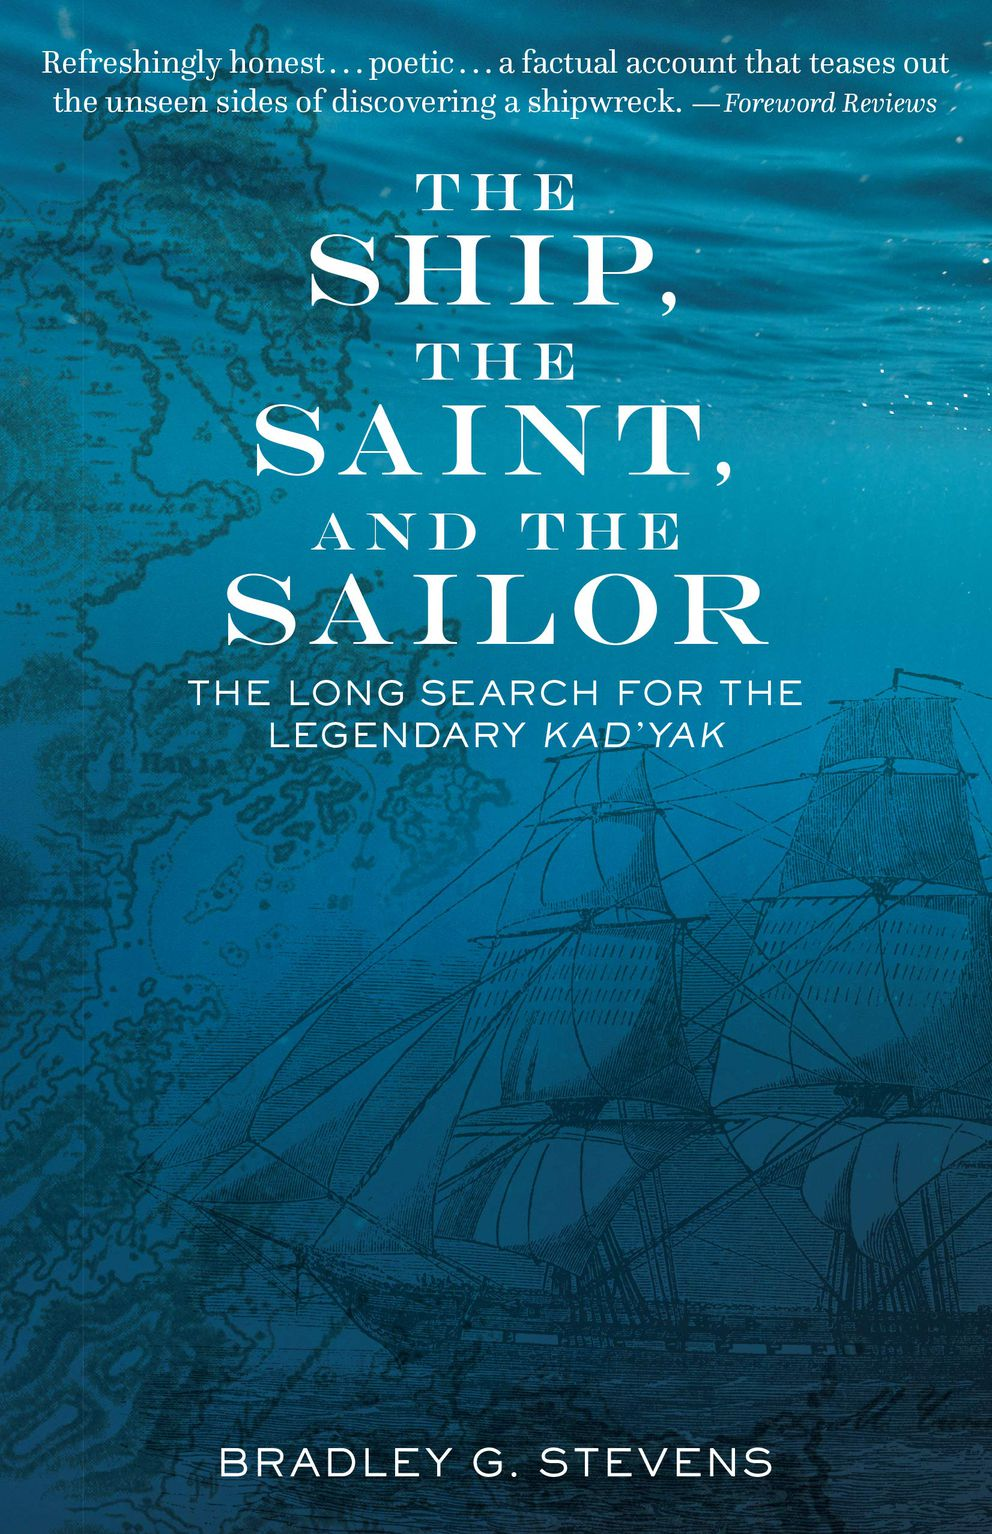 'The Ship, The Saint, and the Sailor: The Long Search for the Legendary Kad'yak, ' by Bradley G. Stevens